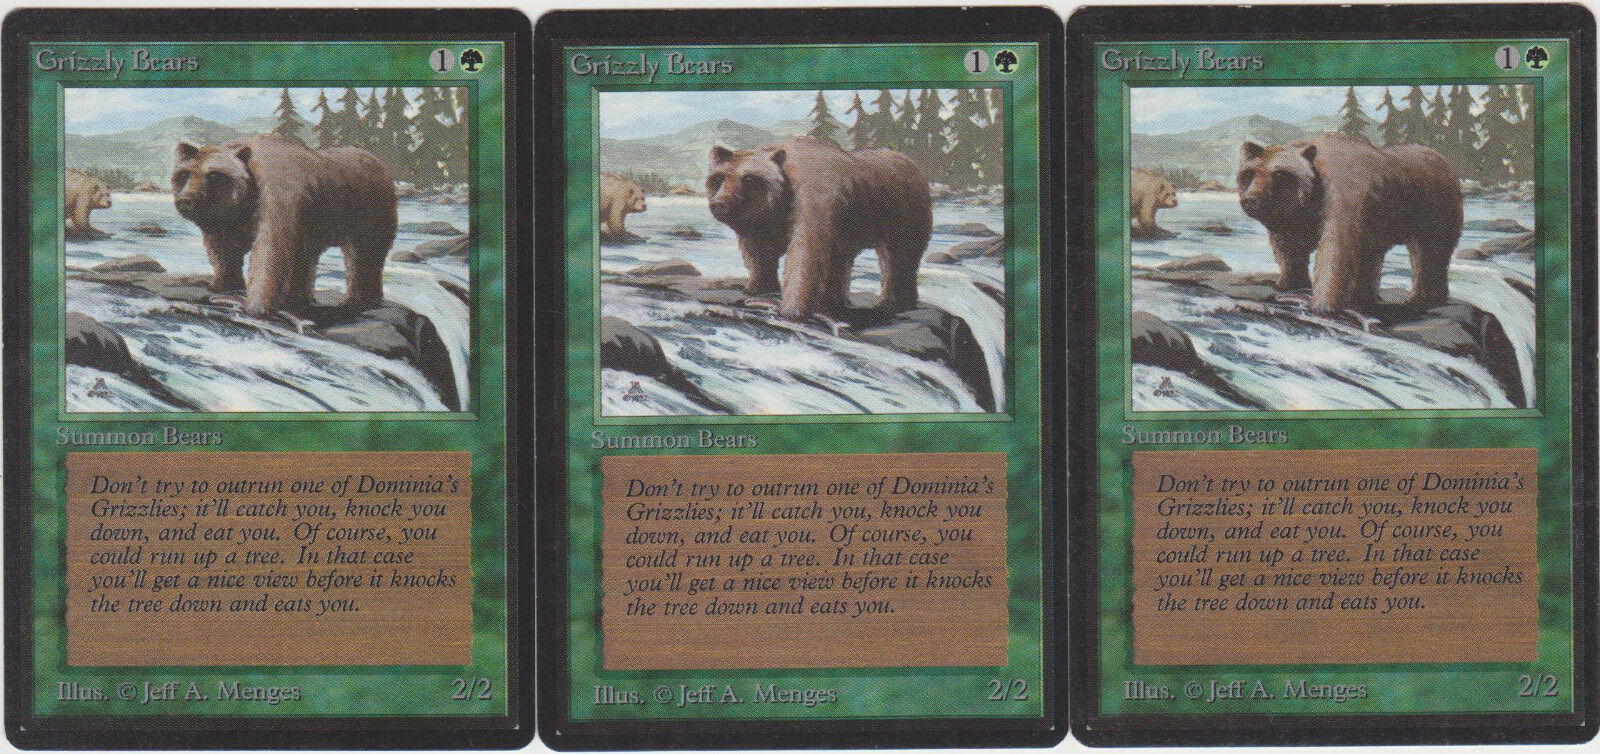 Grizzly bears - beta x3 mtg